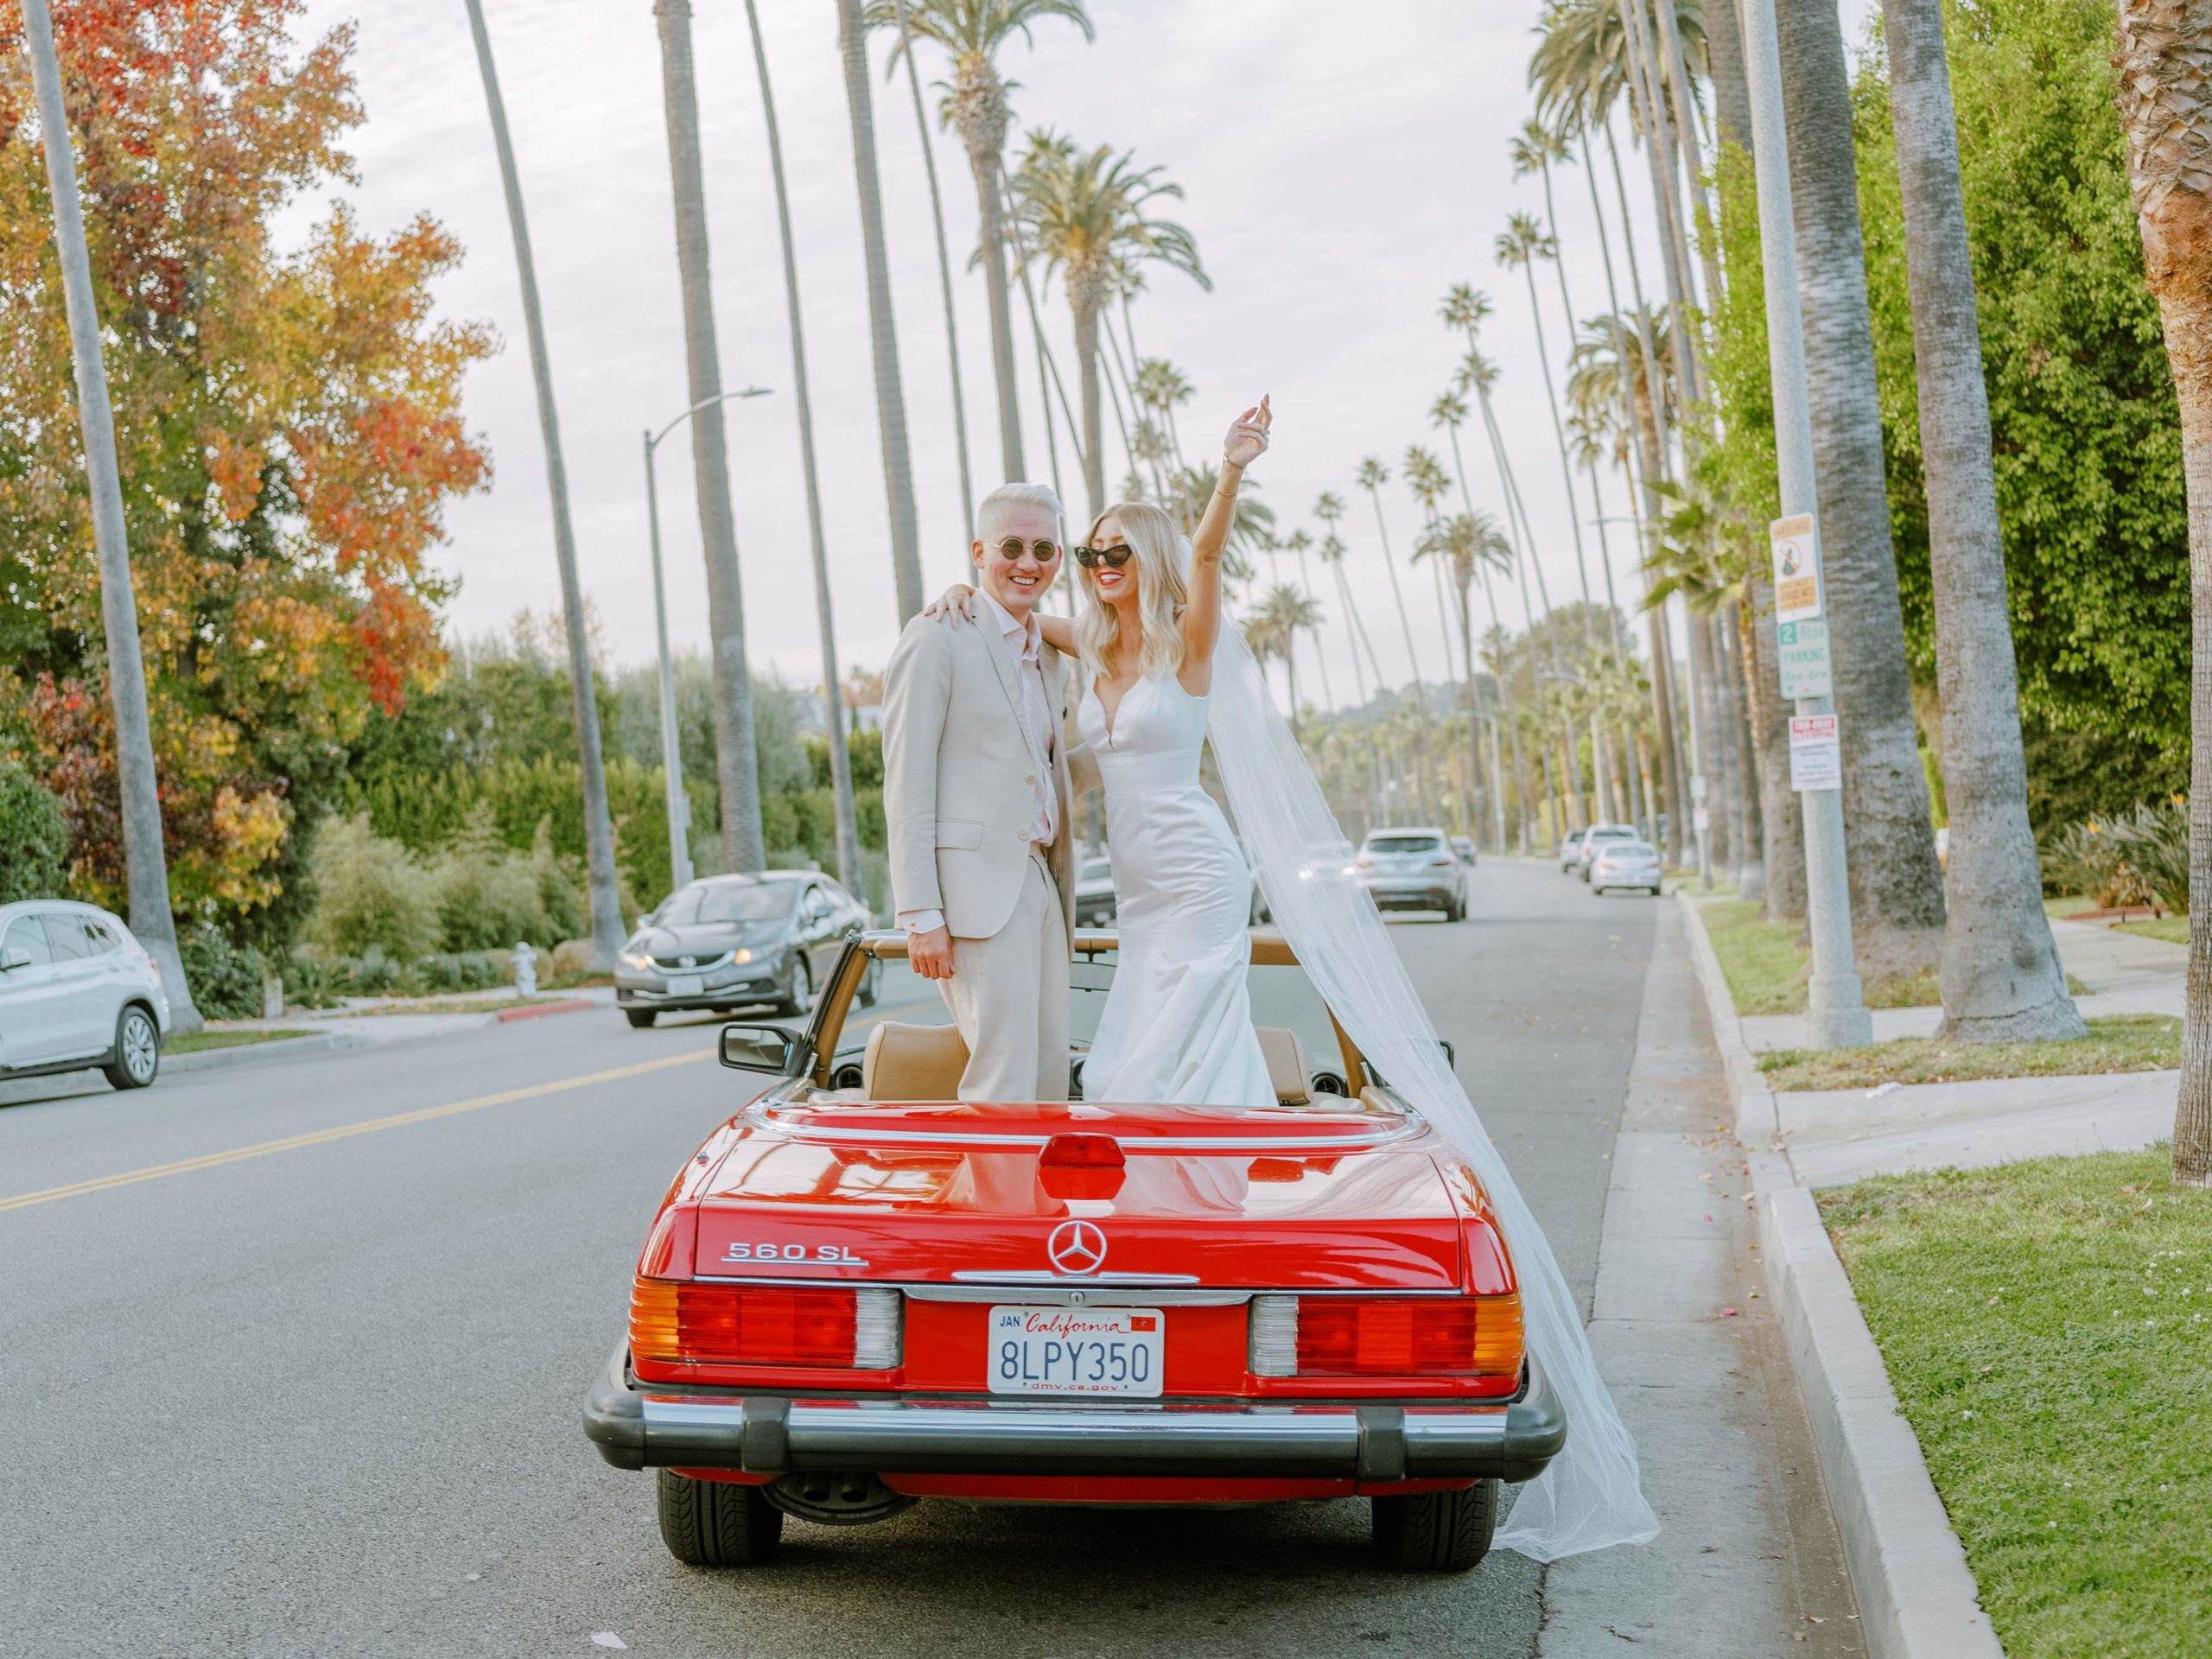 couple dancing in red convertible